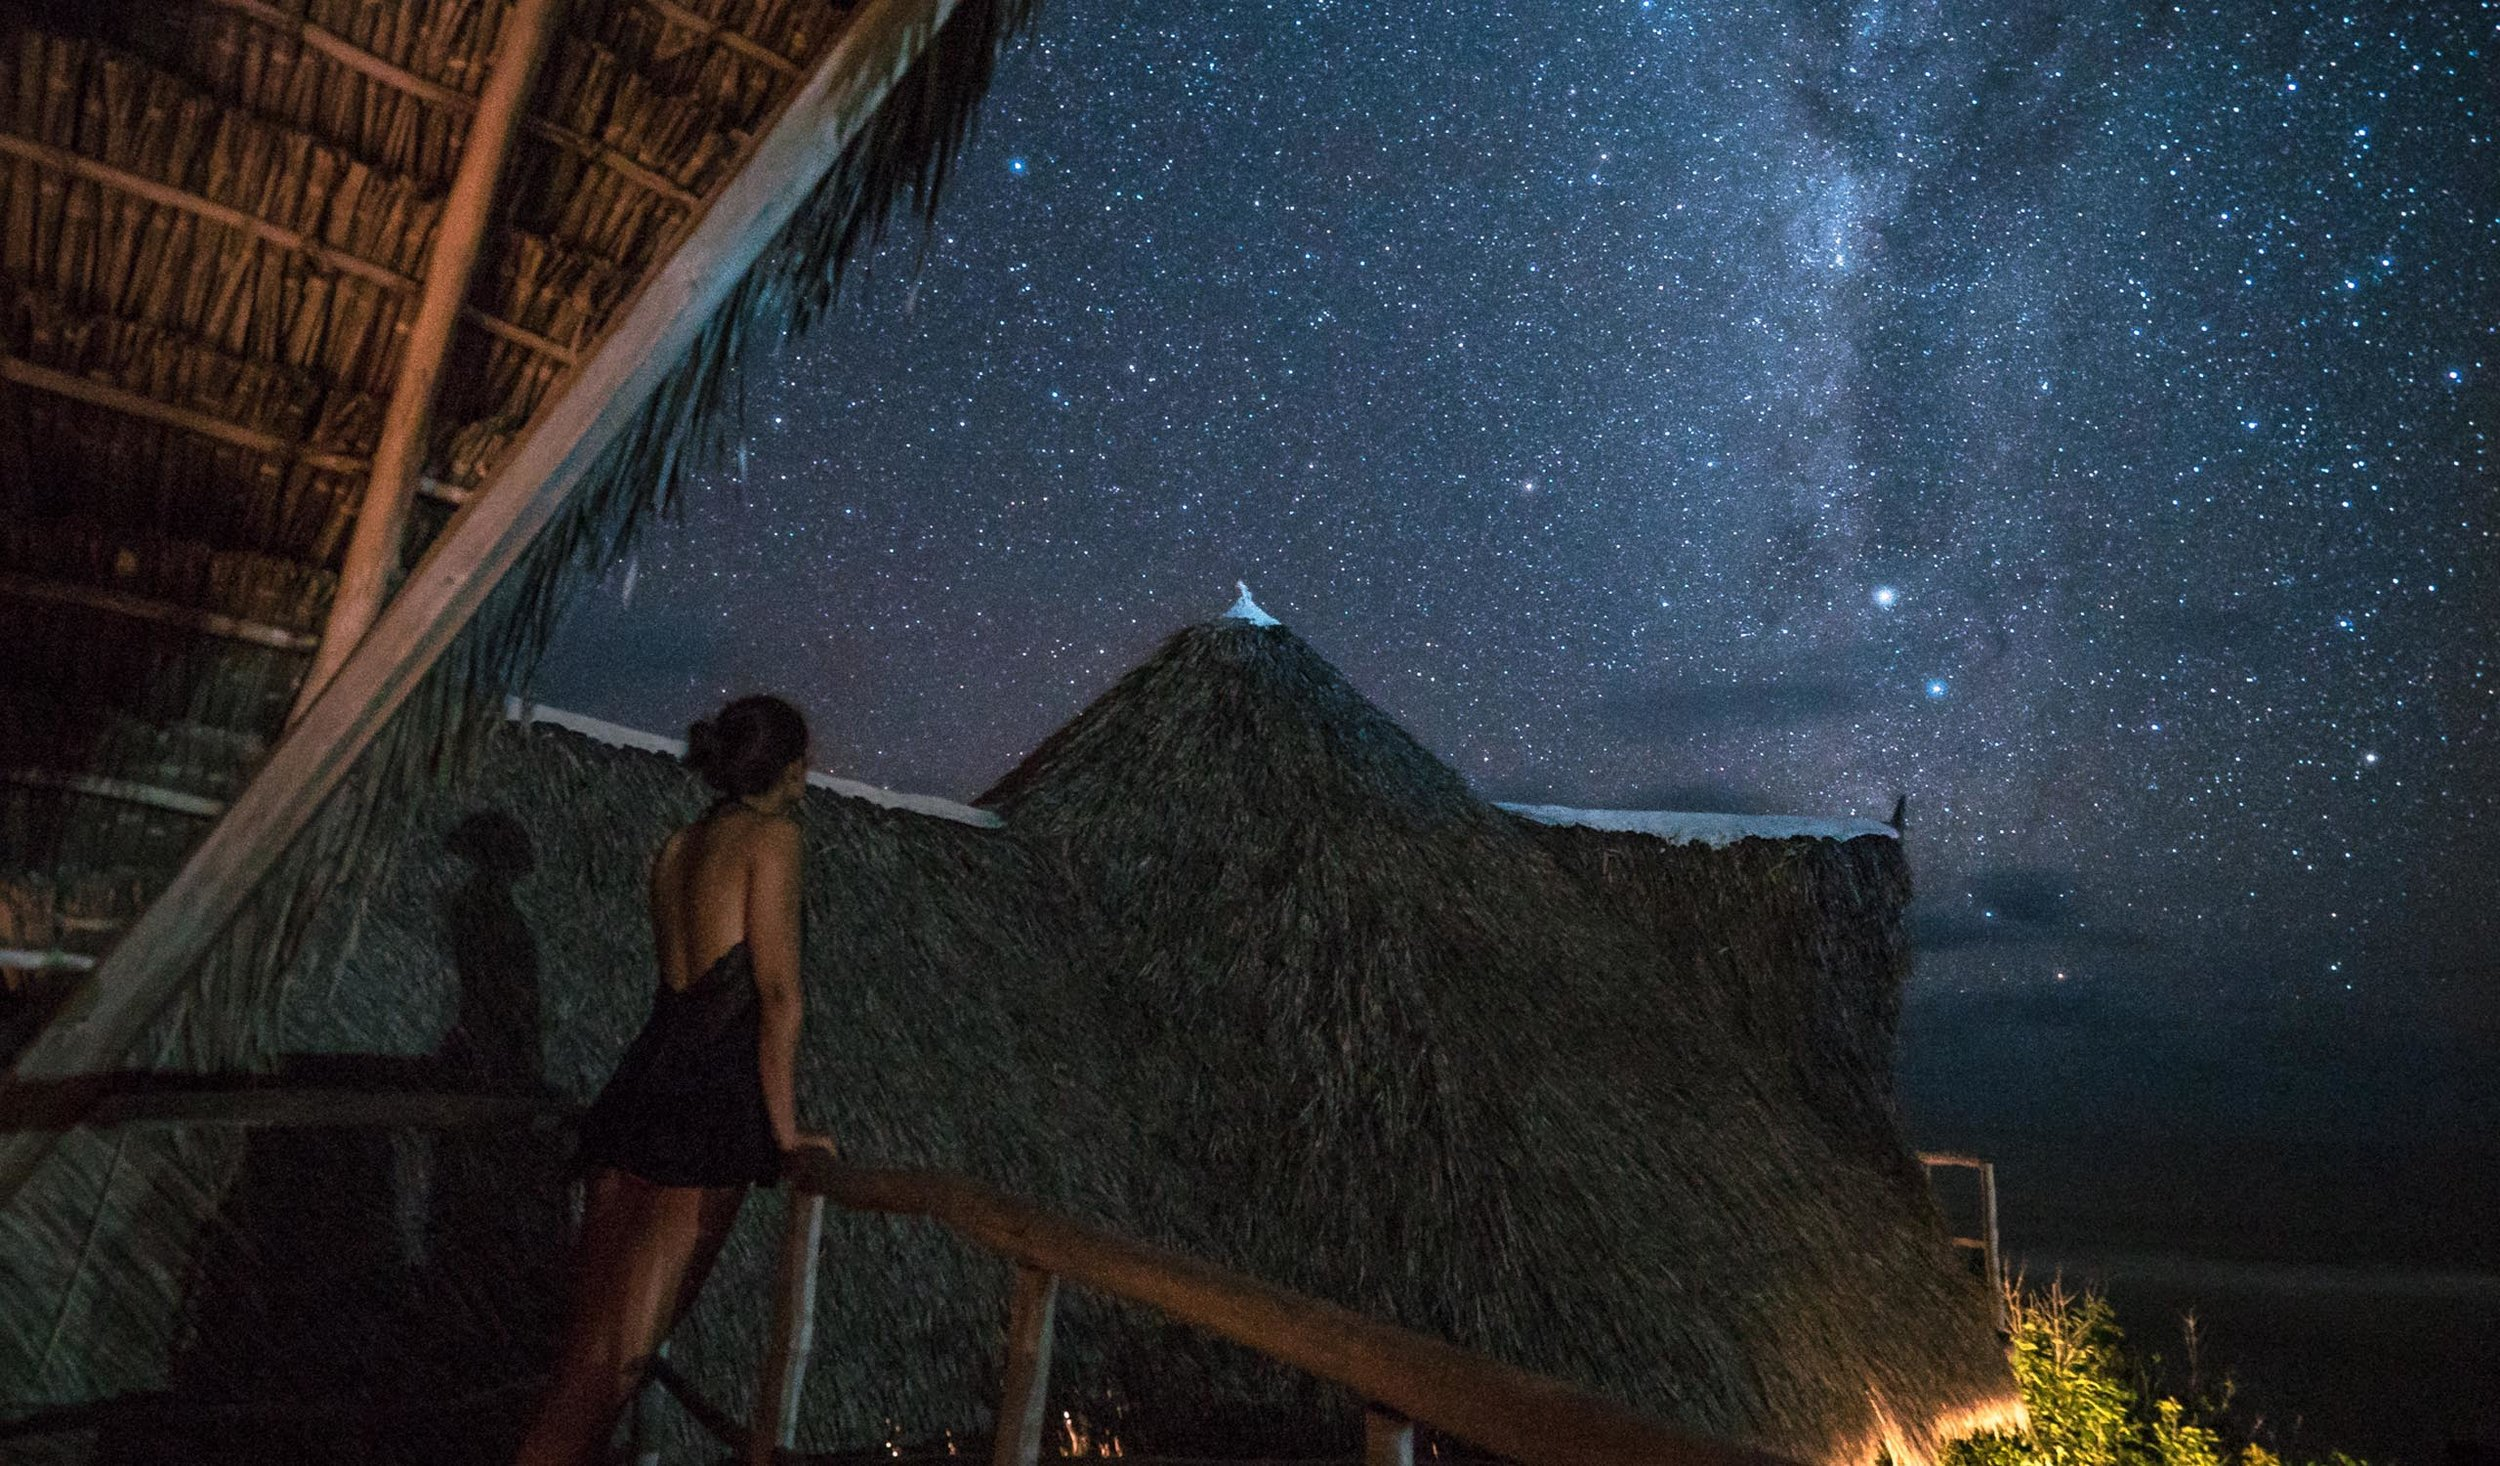 The electricity here is difficult, so during the day the resort works with solar power and during the night you have the stars